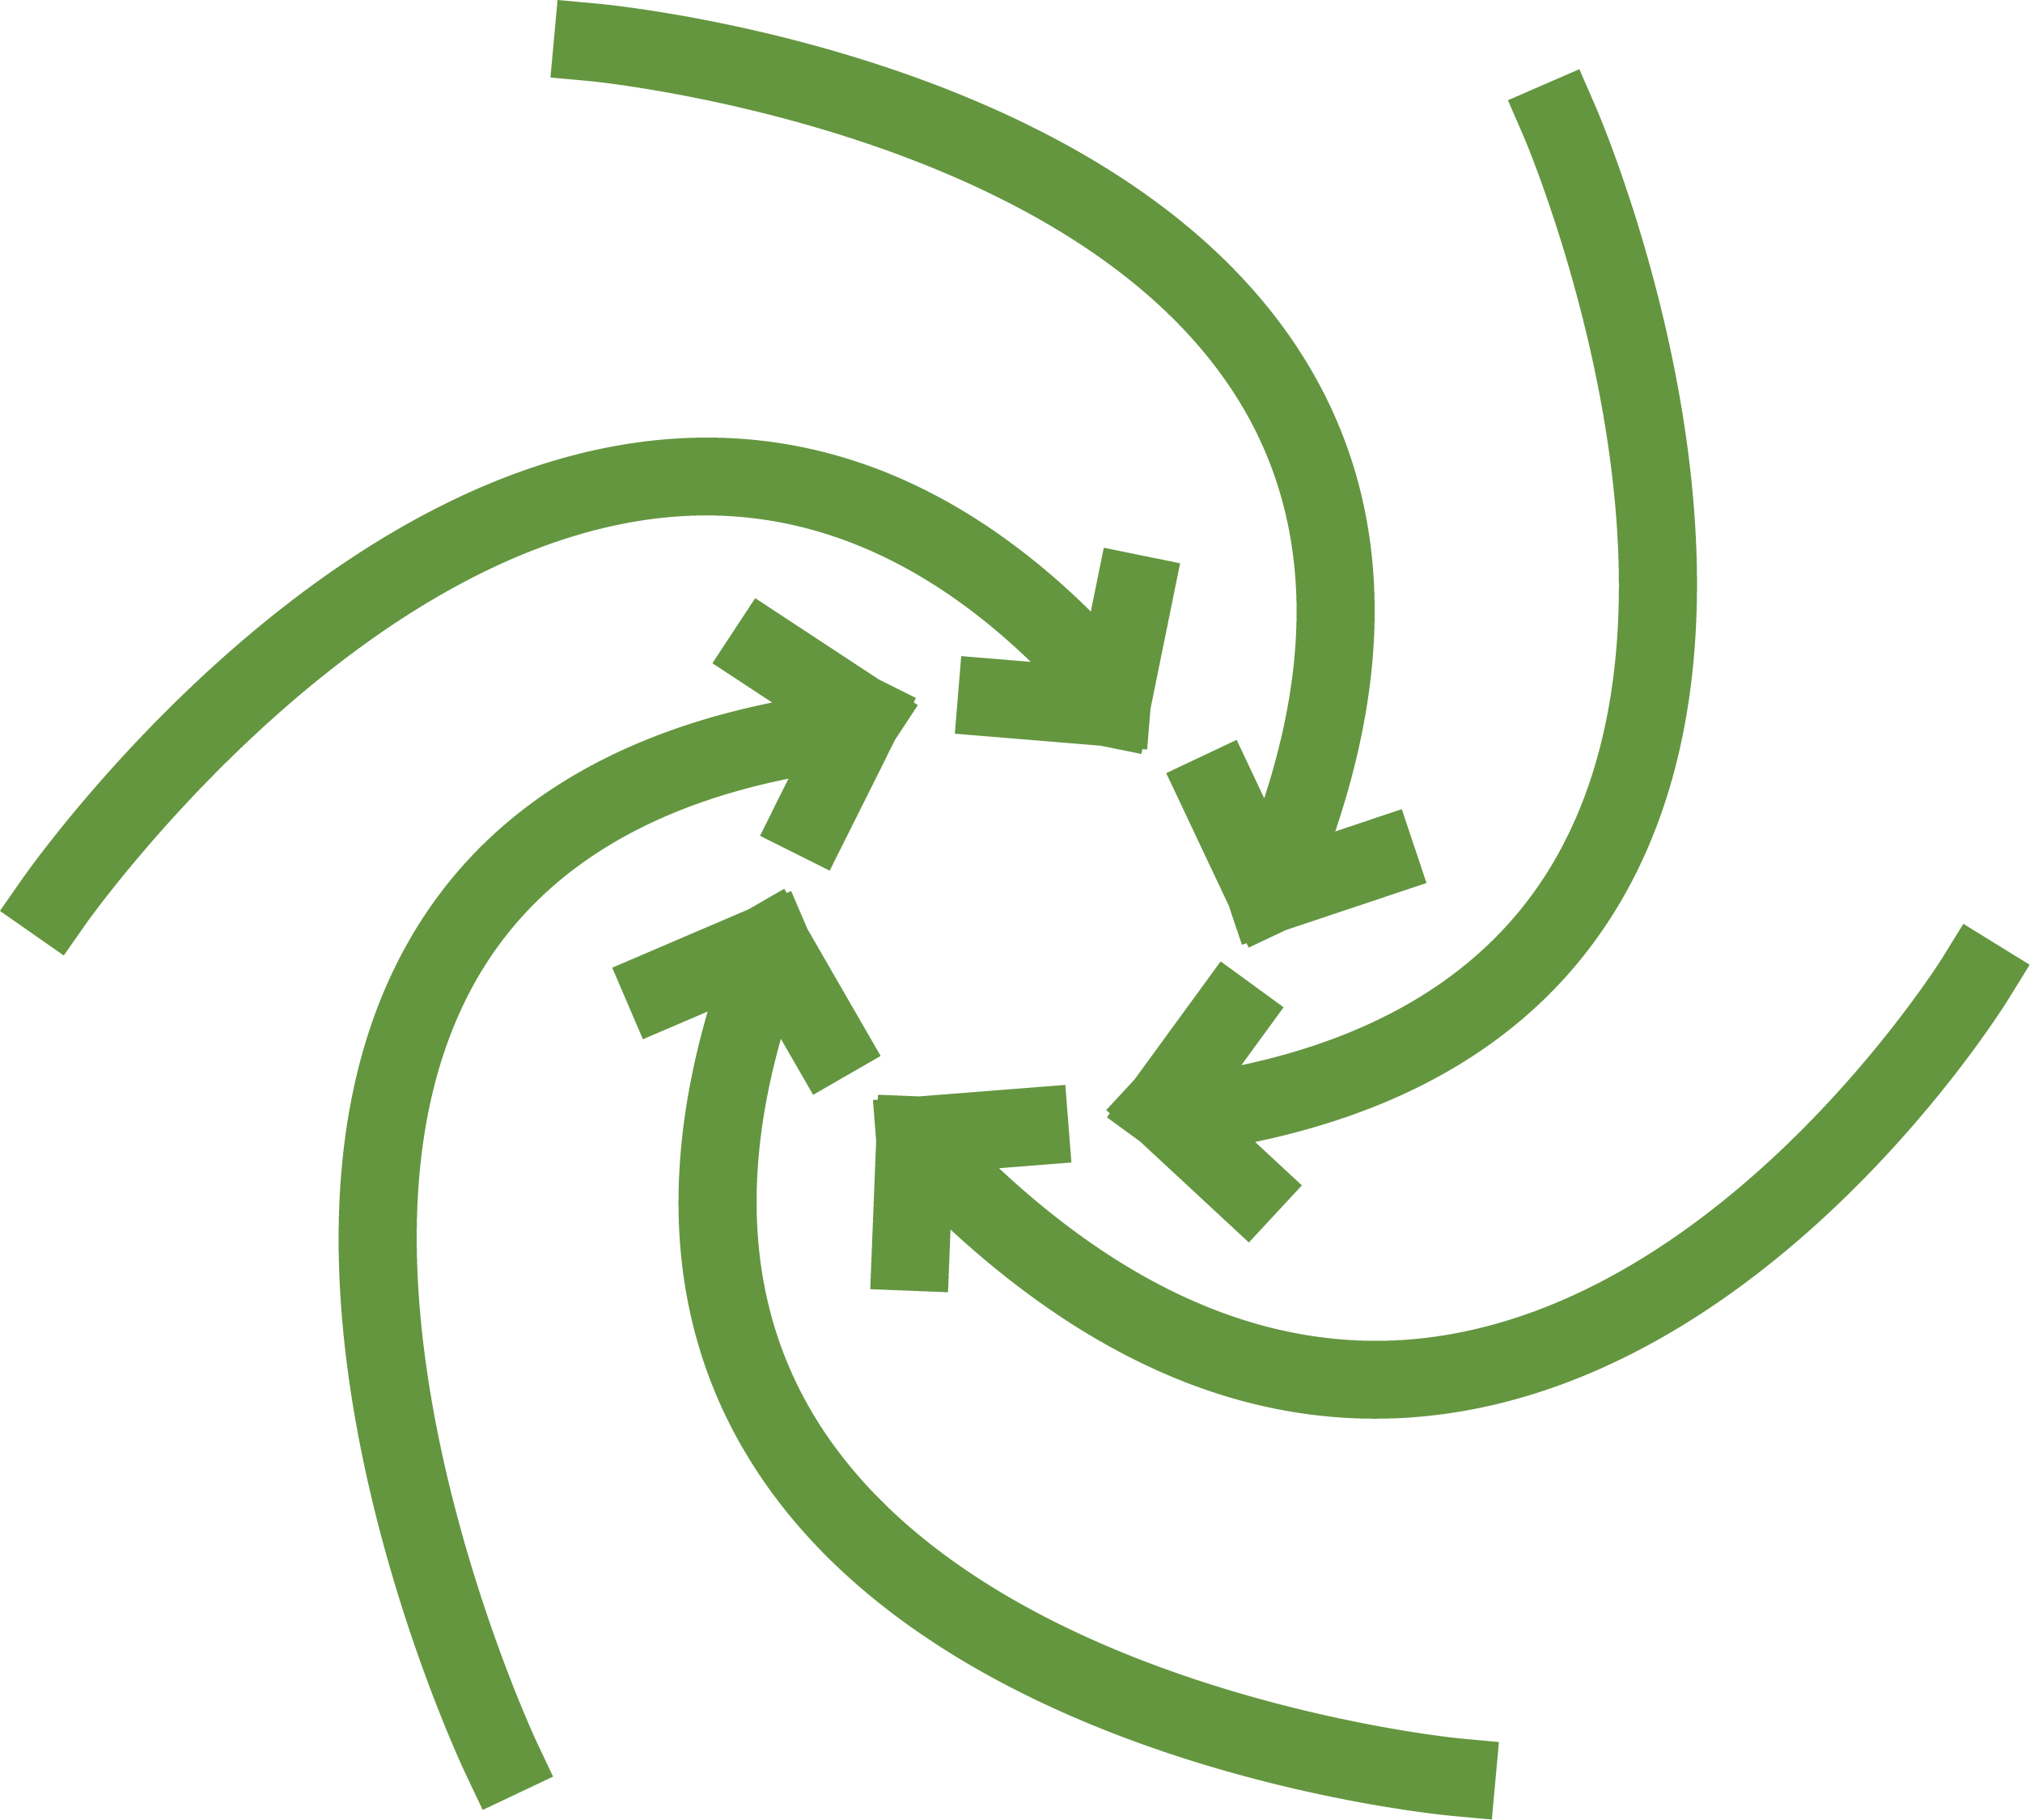 circular green arrows pointing inward